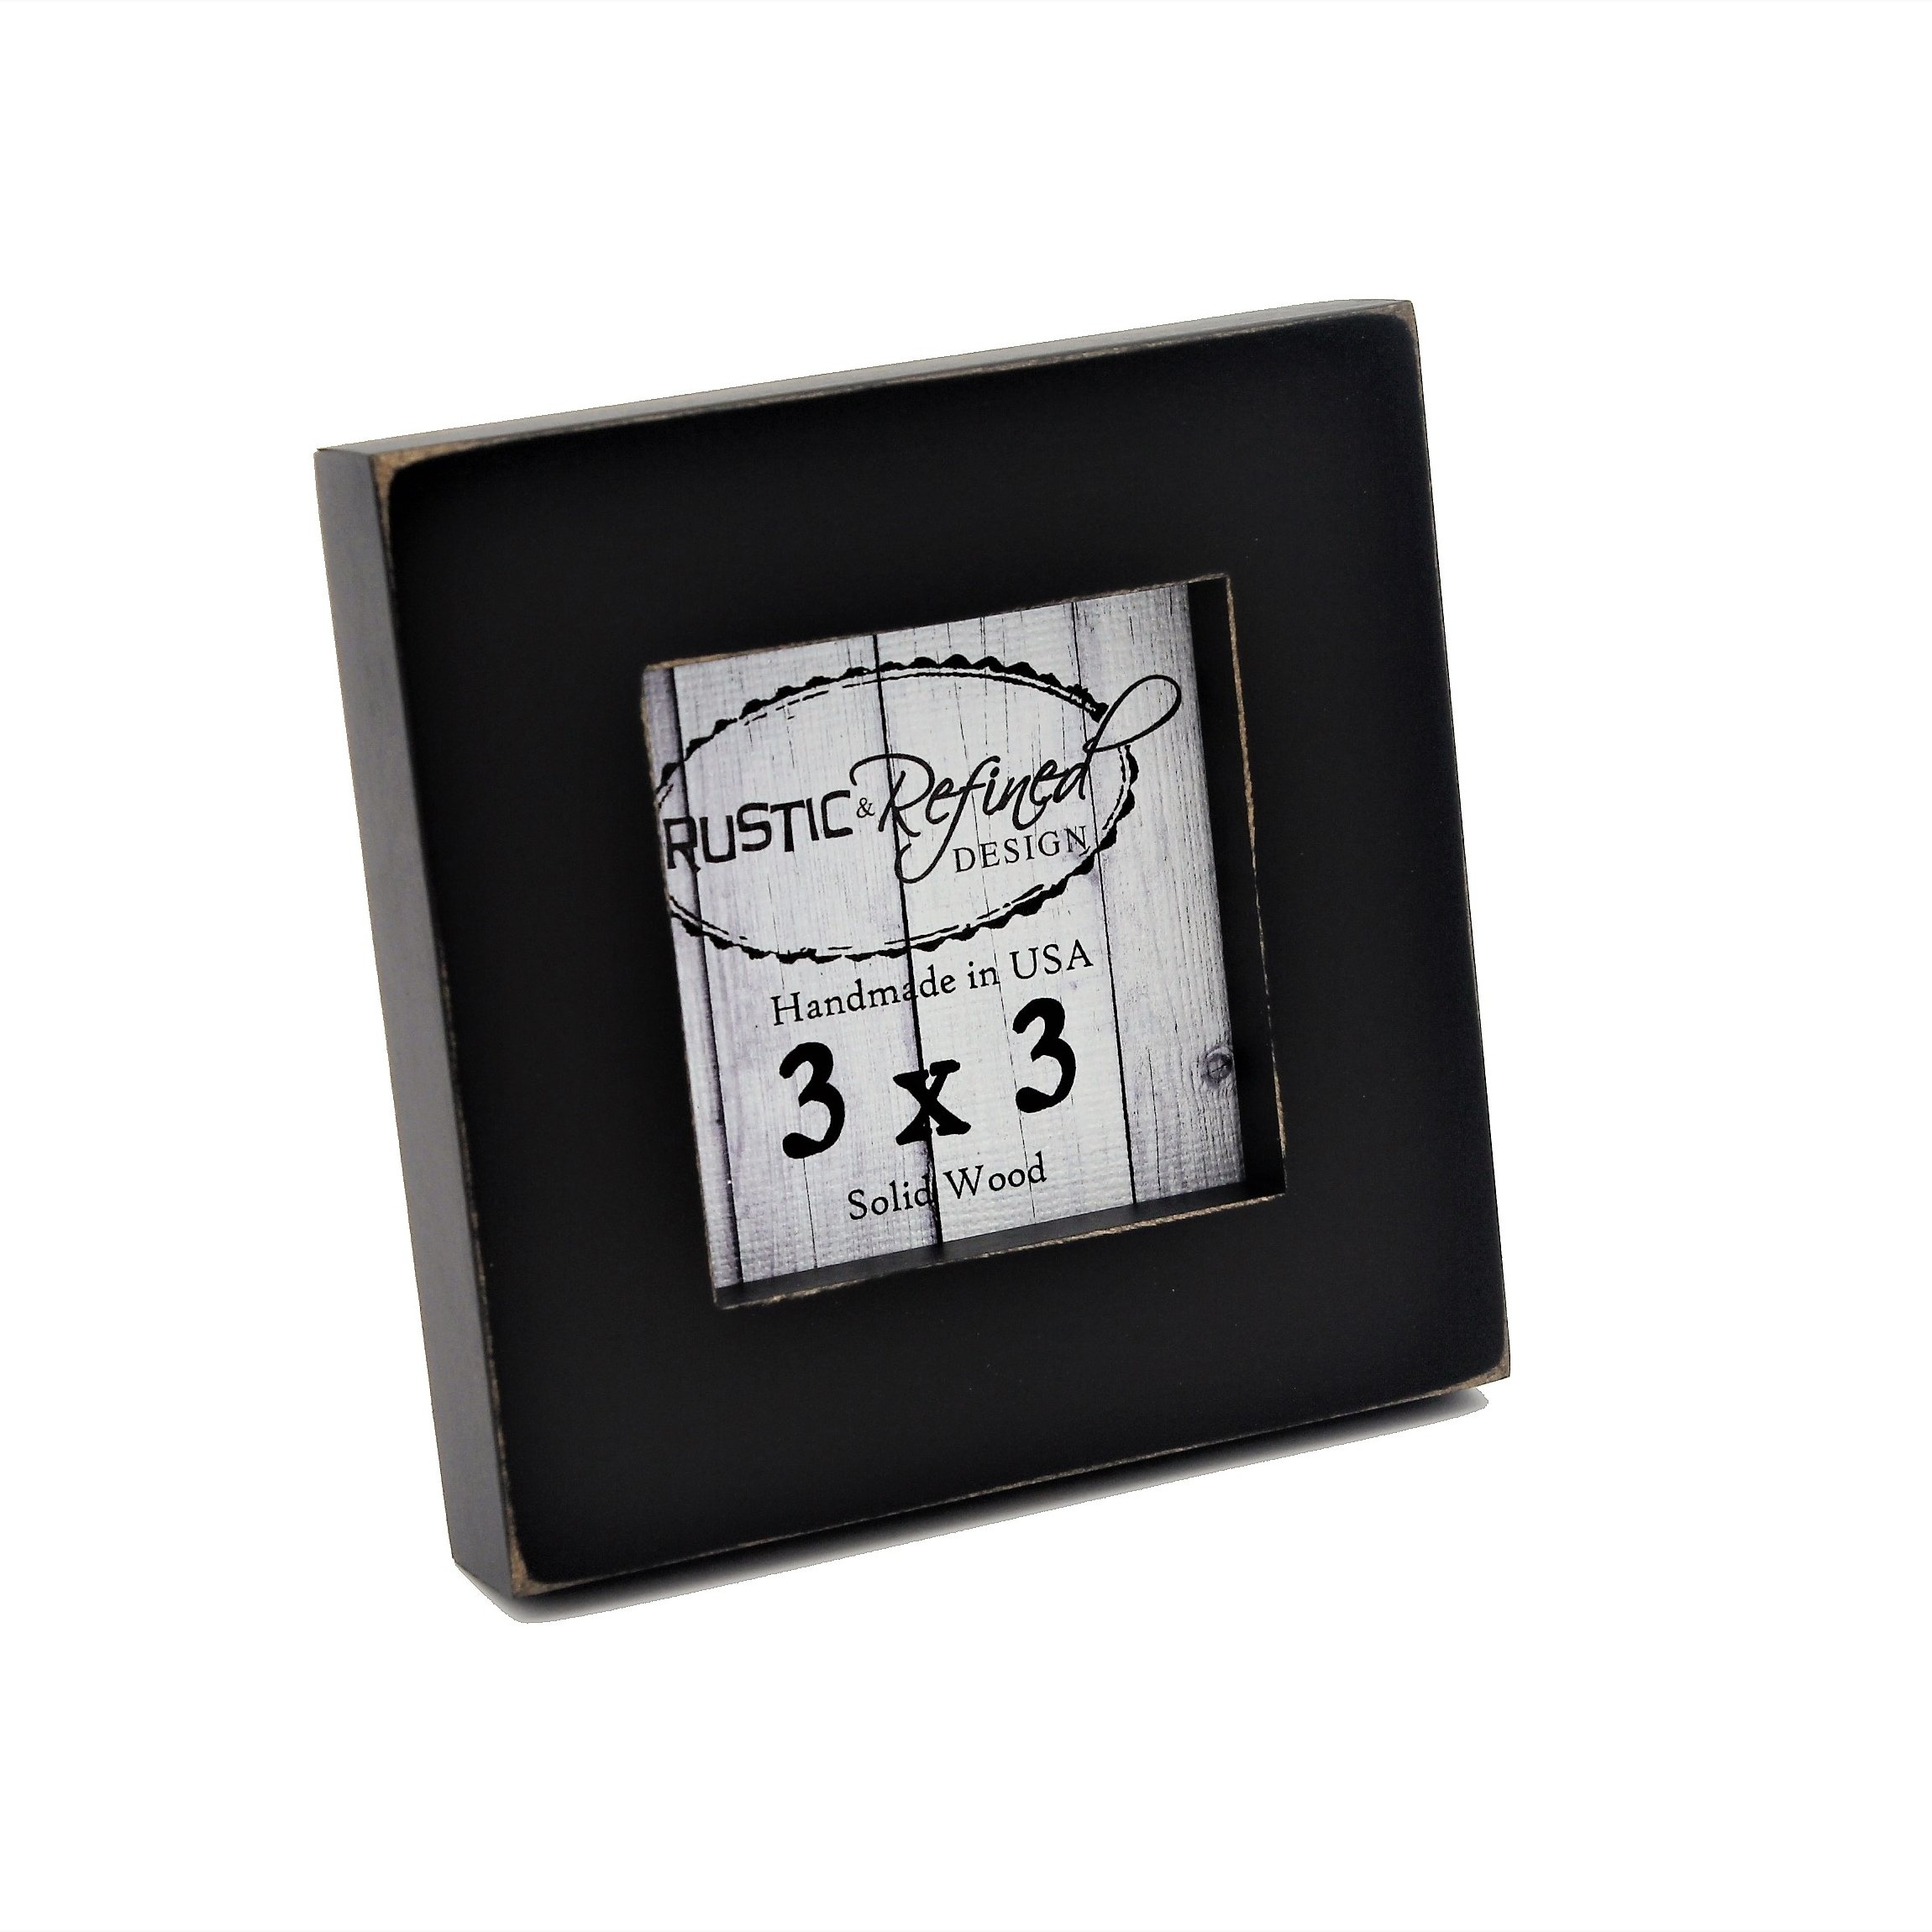 Rustic and Refined Design 3x3 Solid Wood Made in USA Picture Frame with 1 Inch Border (Gallery Collection) - Black